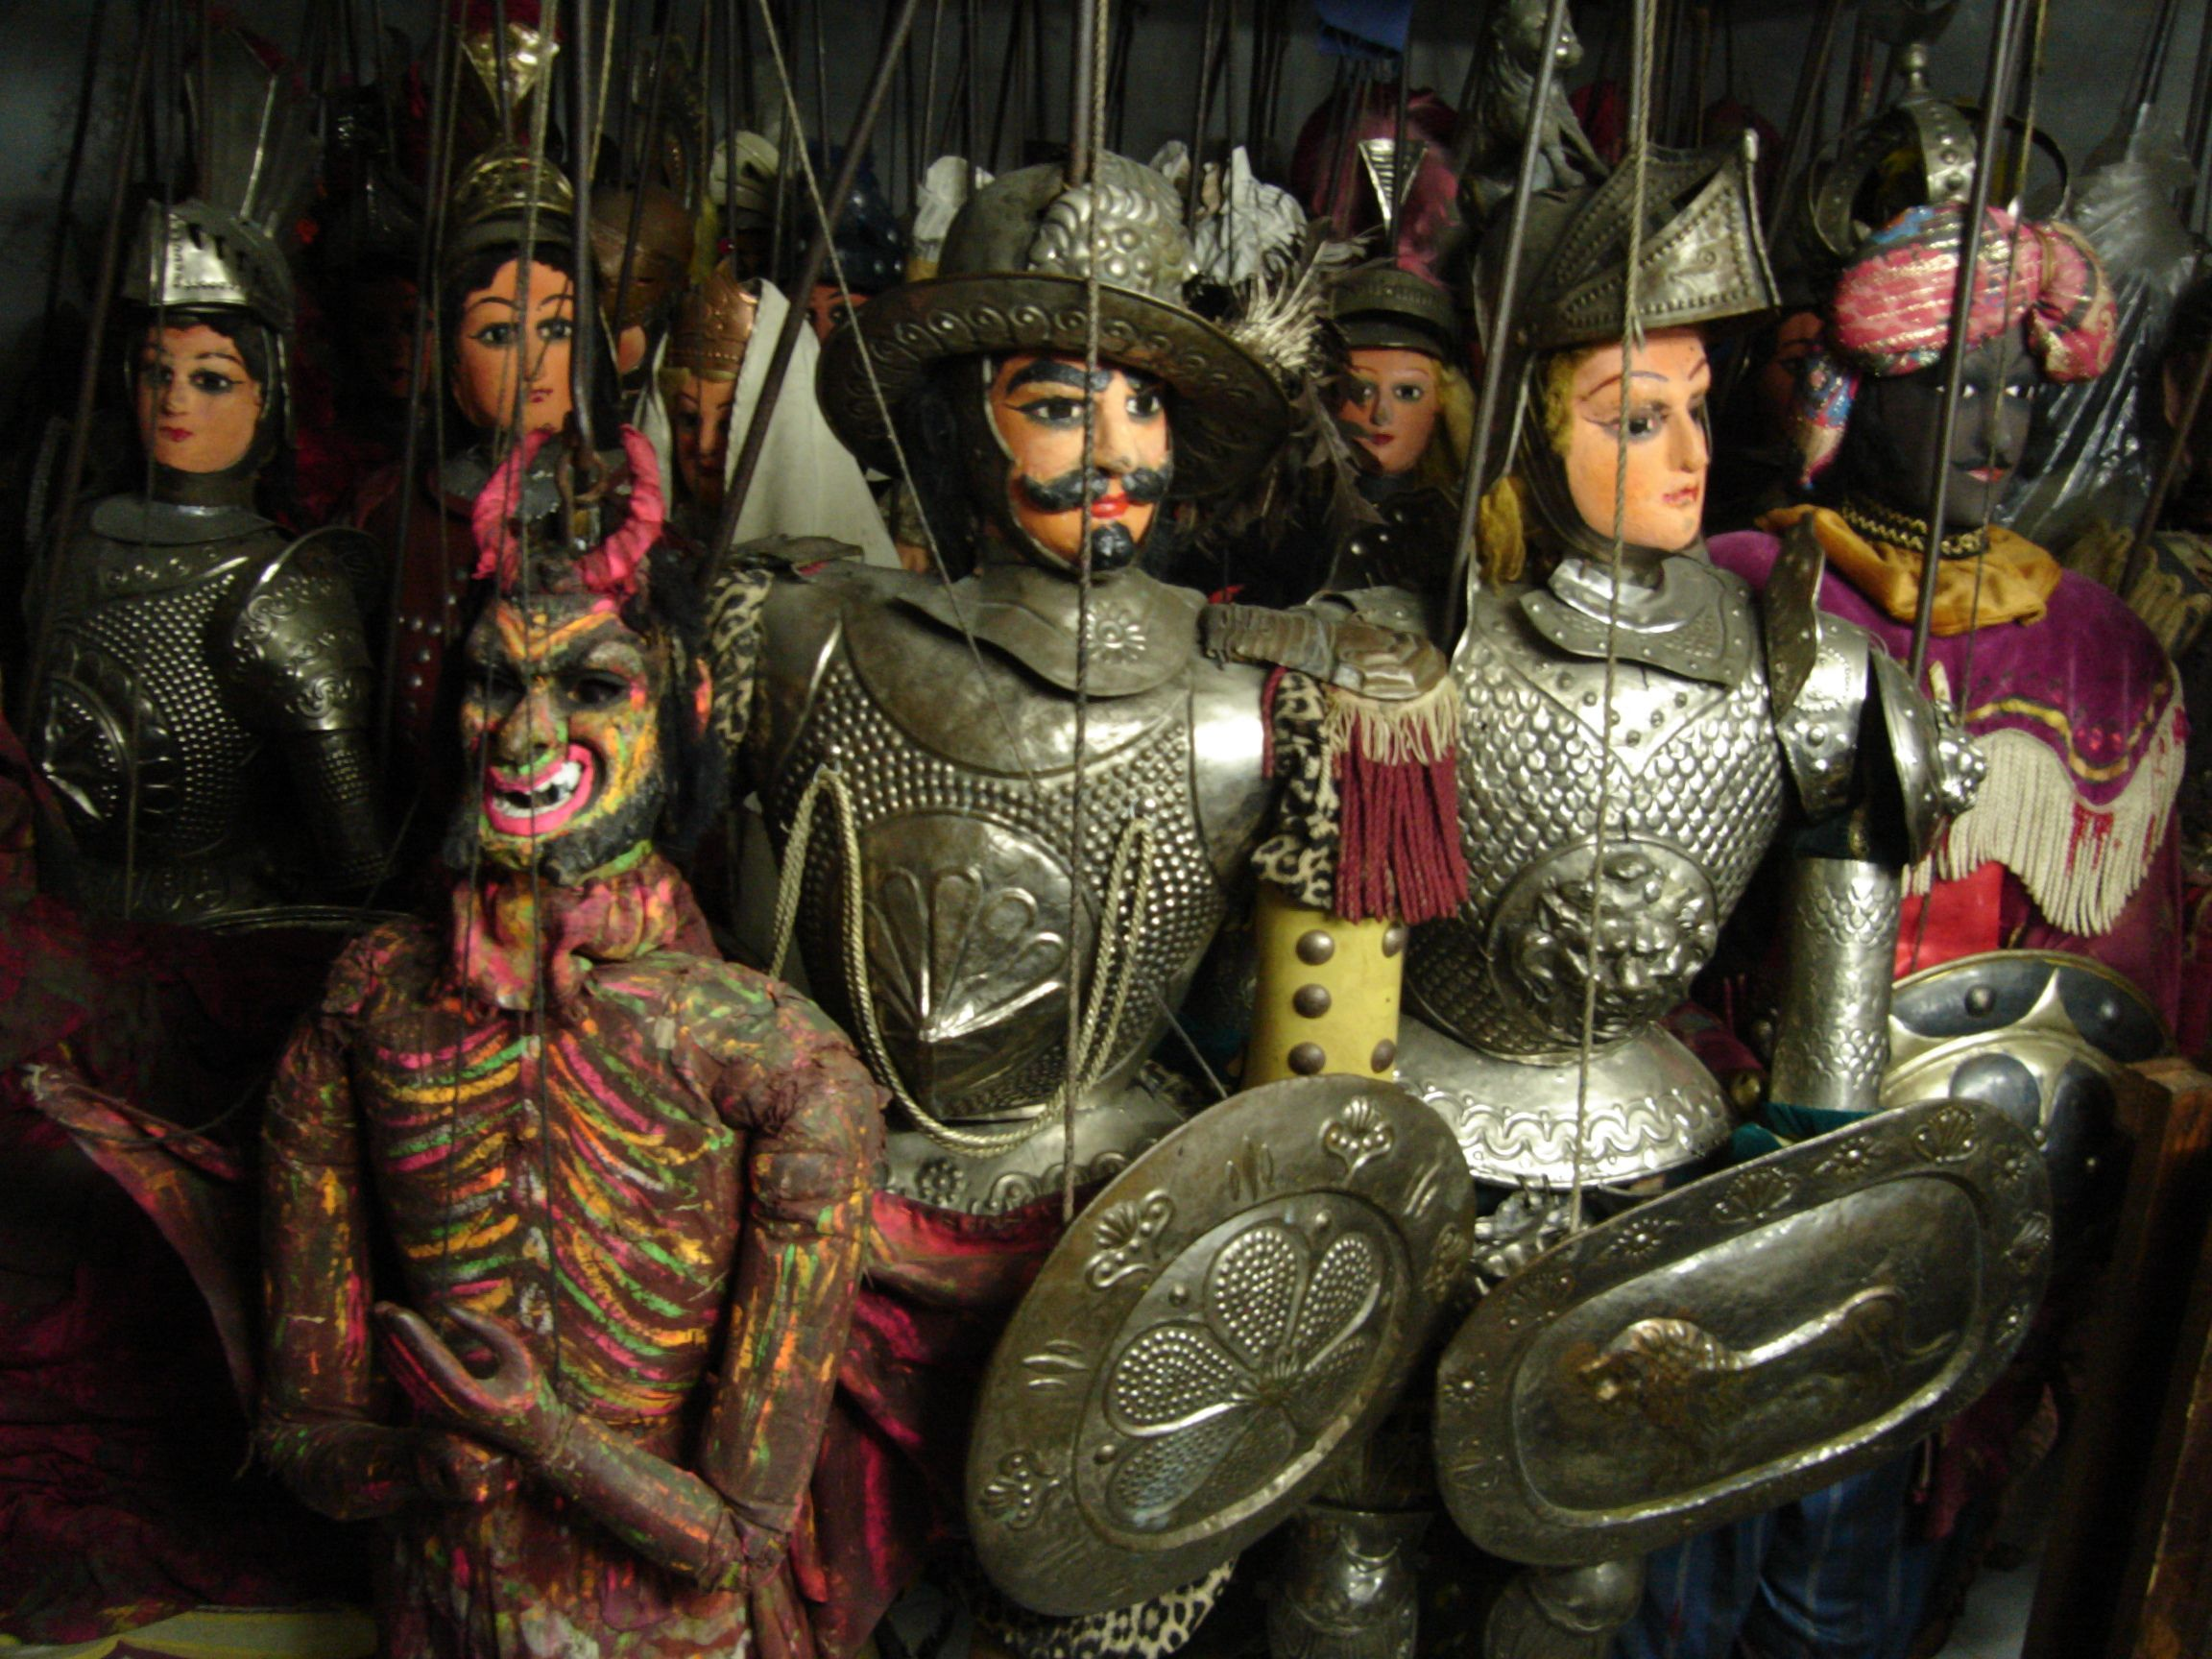 Pupi Siciliani, or Sicilian puppets, tell ancient stories ...